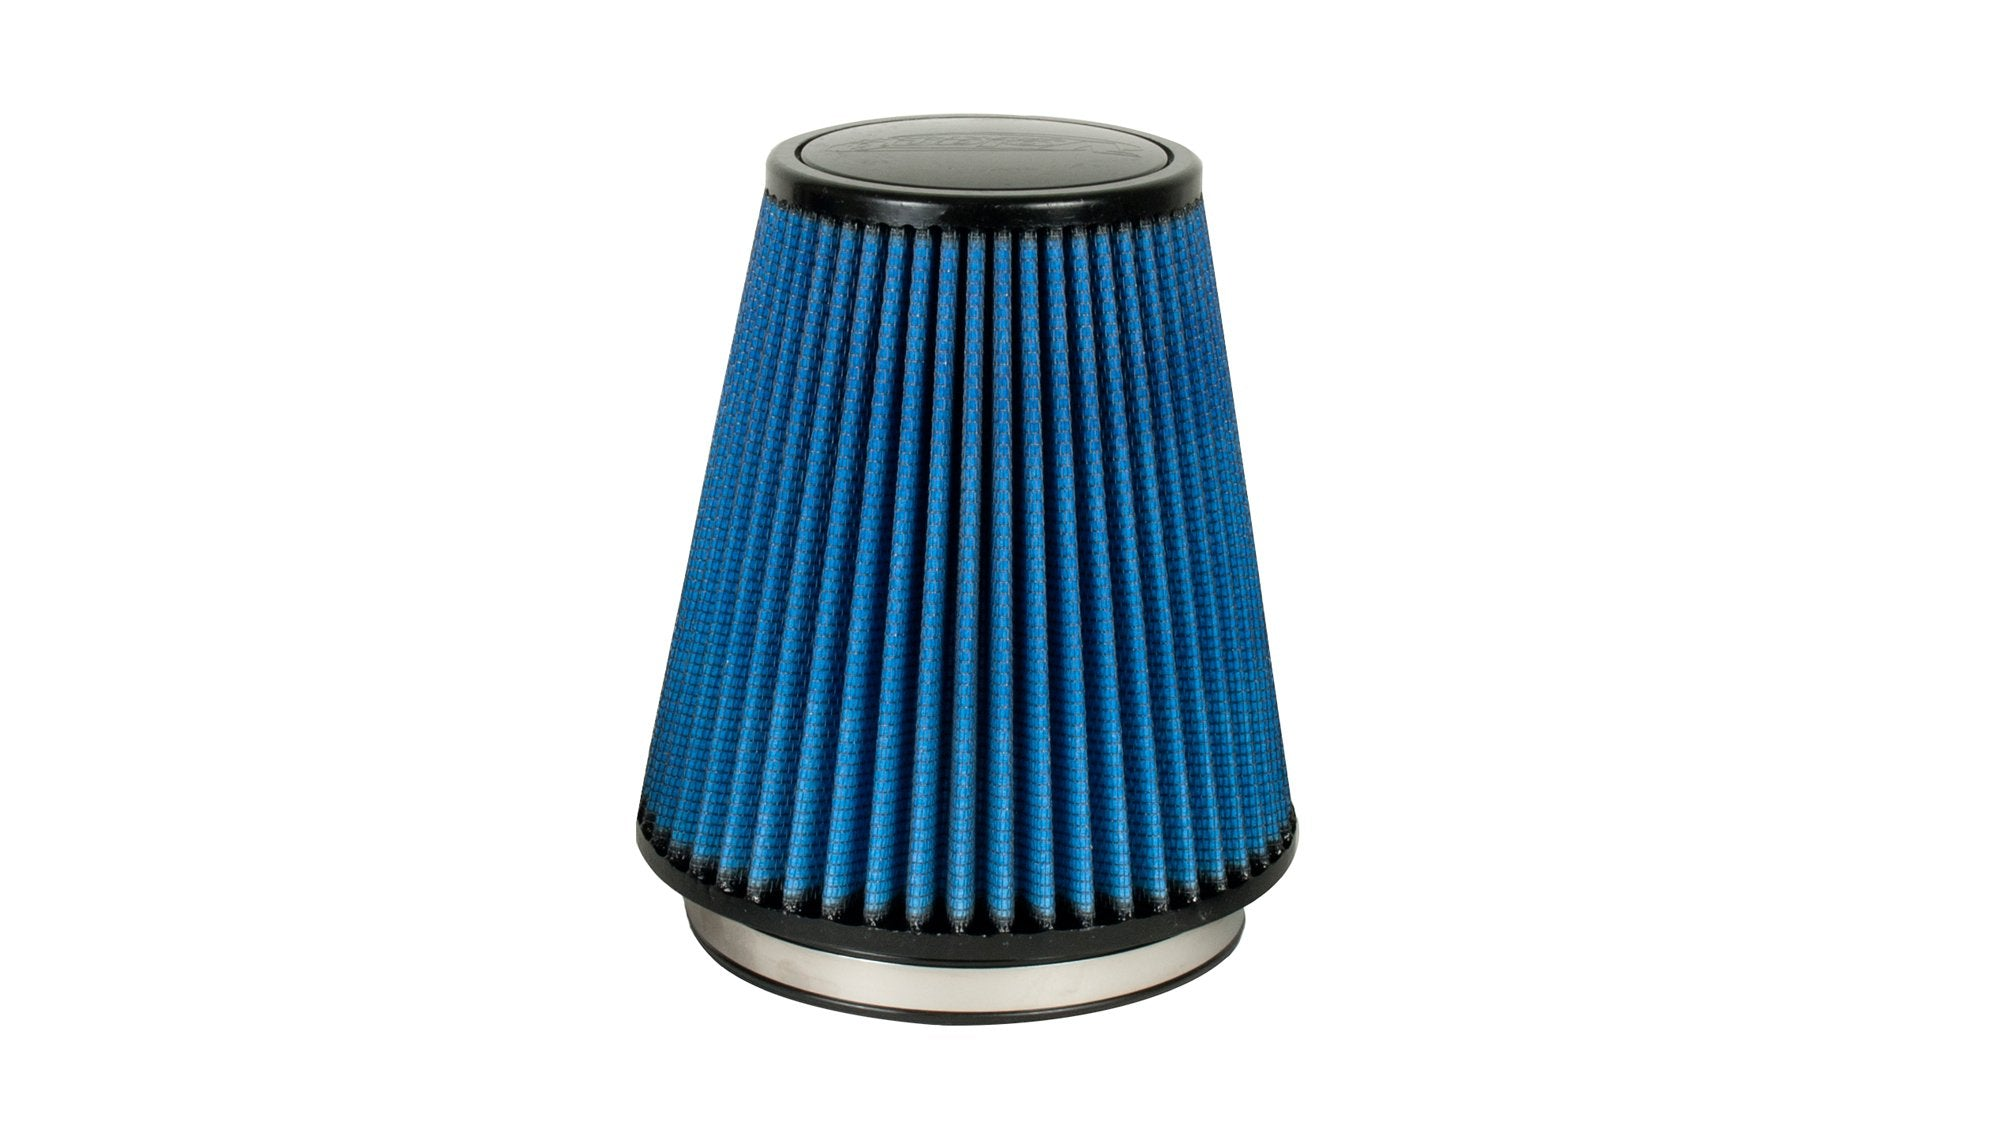 MaxFlow Oiled Air Filter (5119) Replacement Air Filter